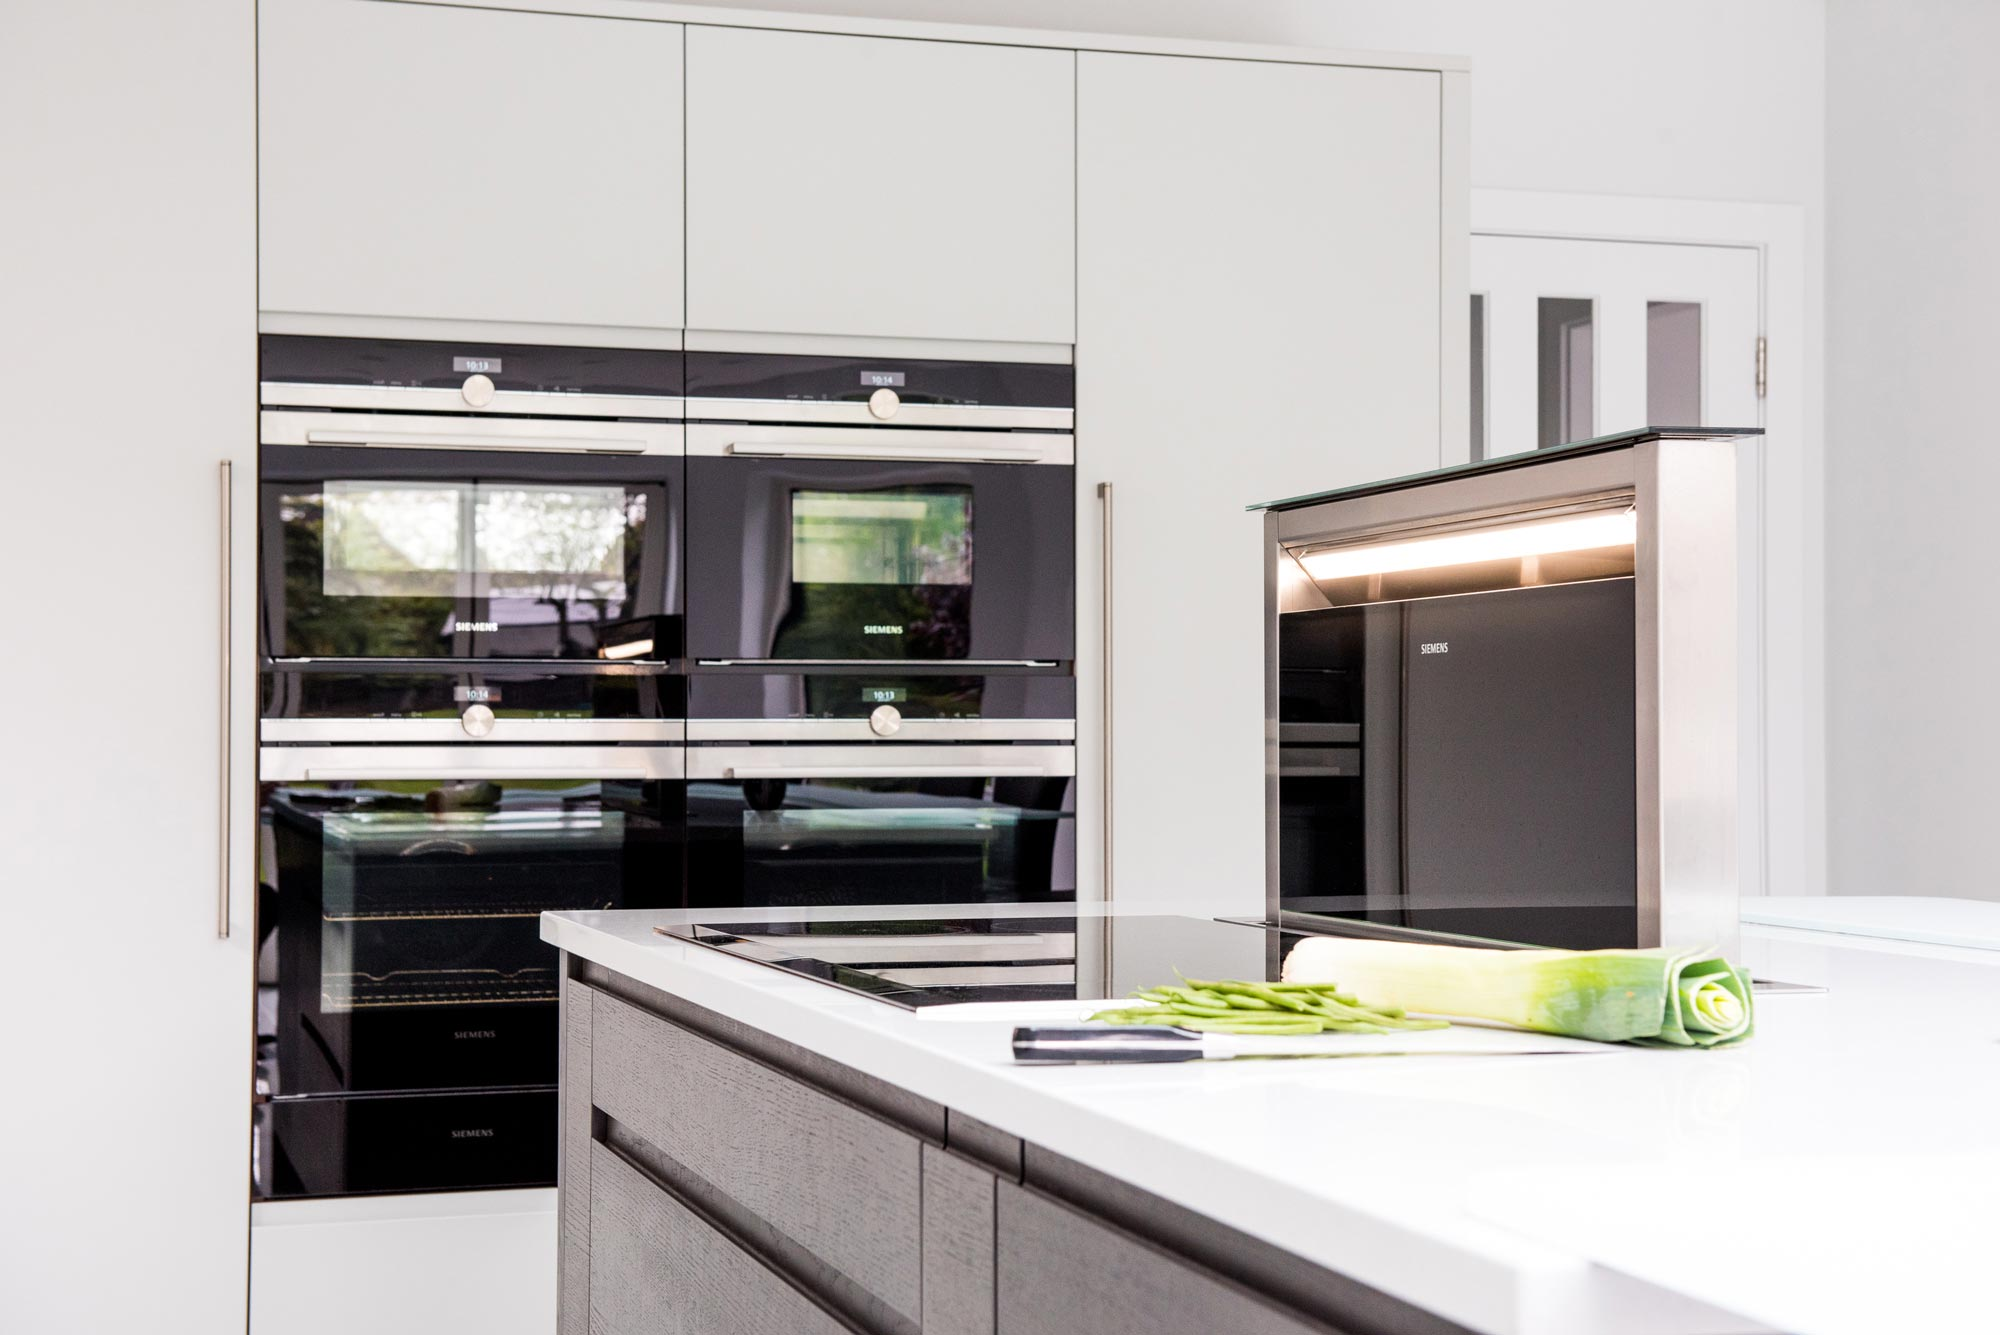 Stoneham Kitchens - for high gloss kitchens view the Flow collection